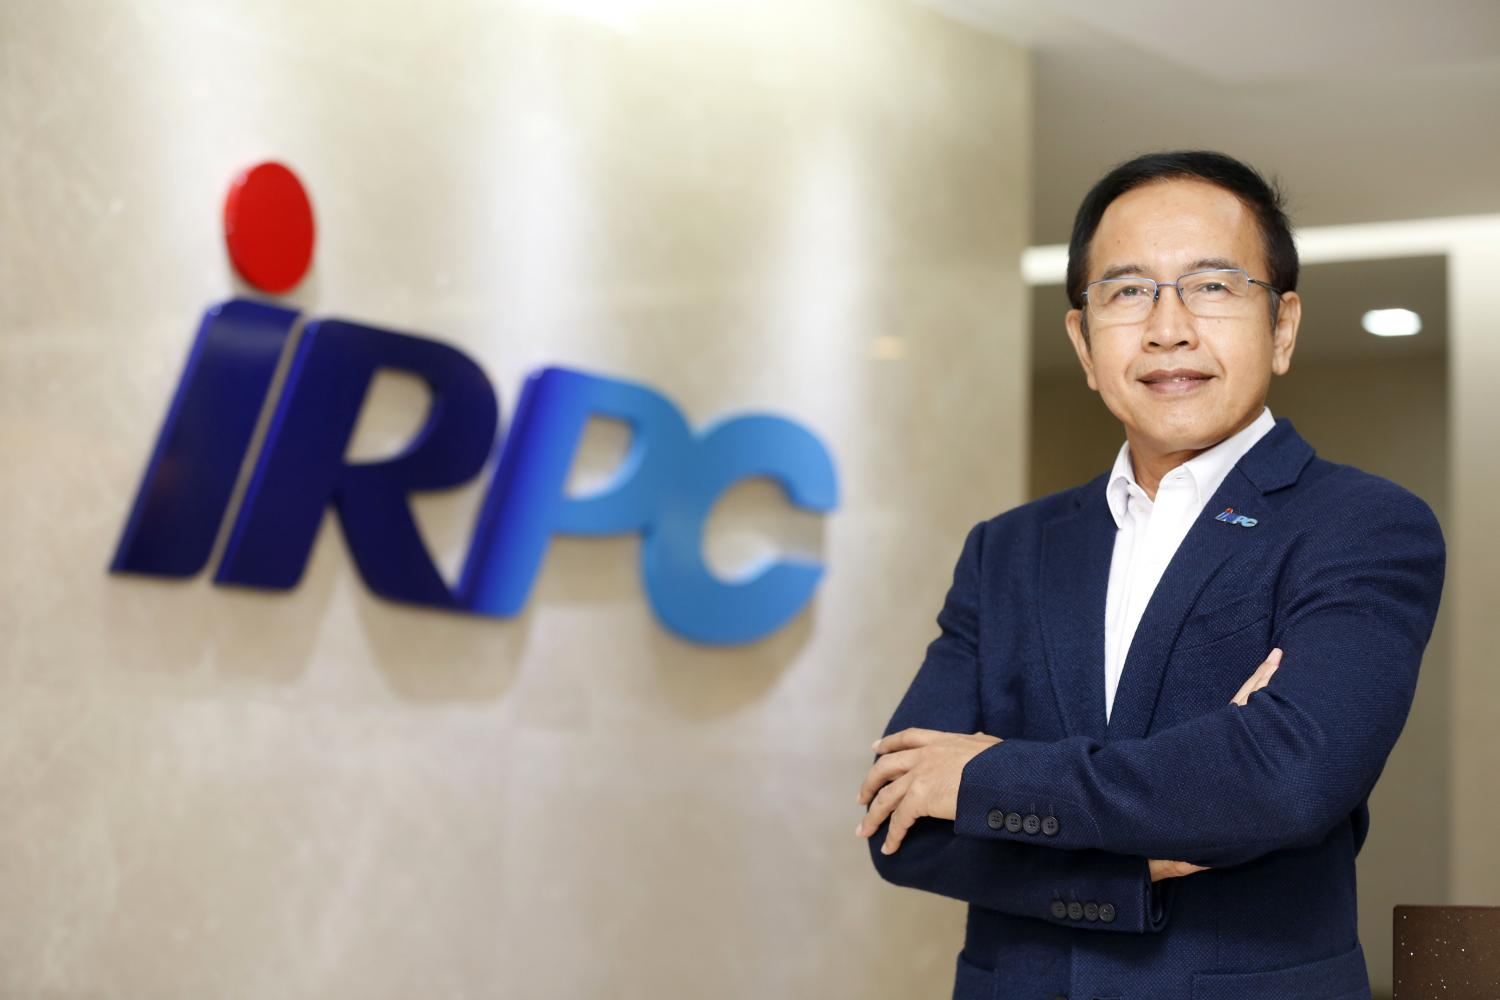 Mr Noppadol was appointed chief executive of IRPC in January 2019 after working at parent firm PTT.